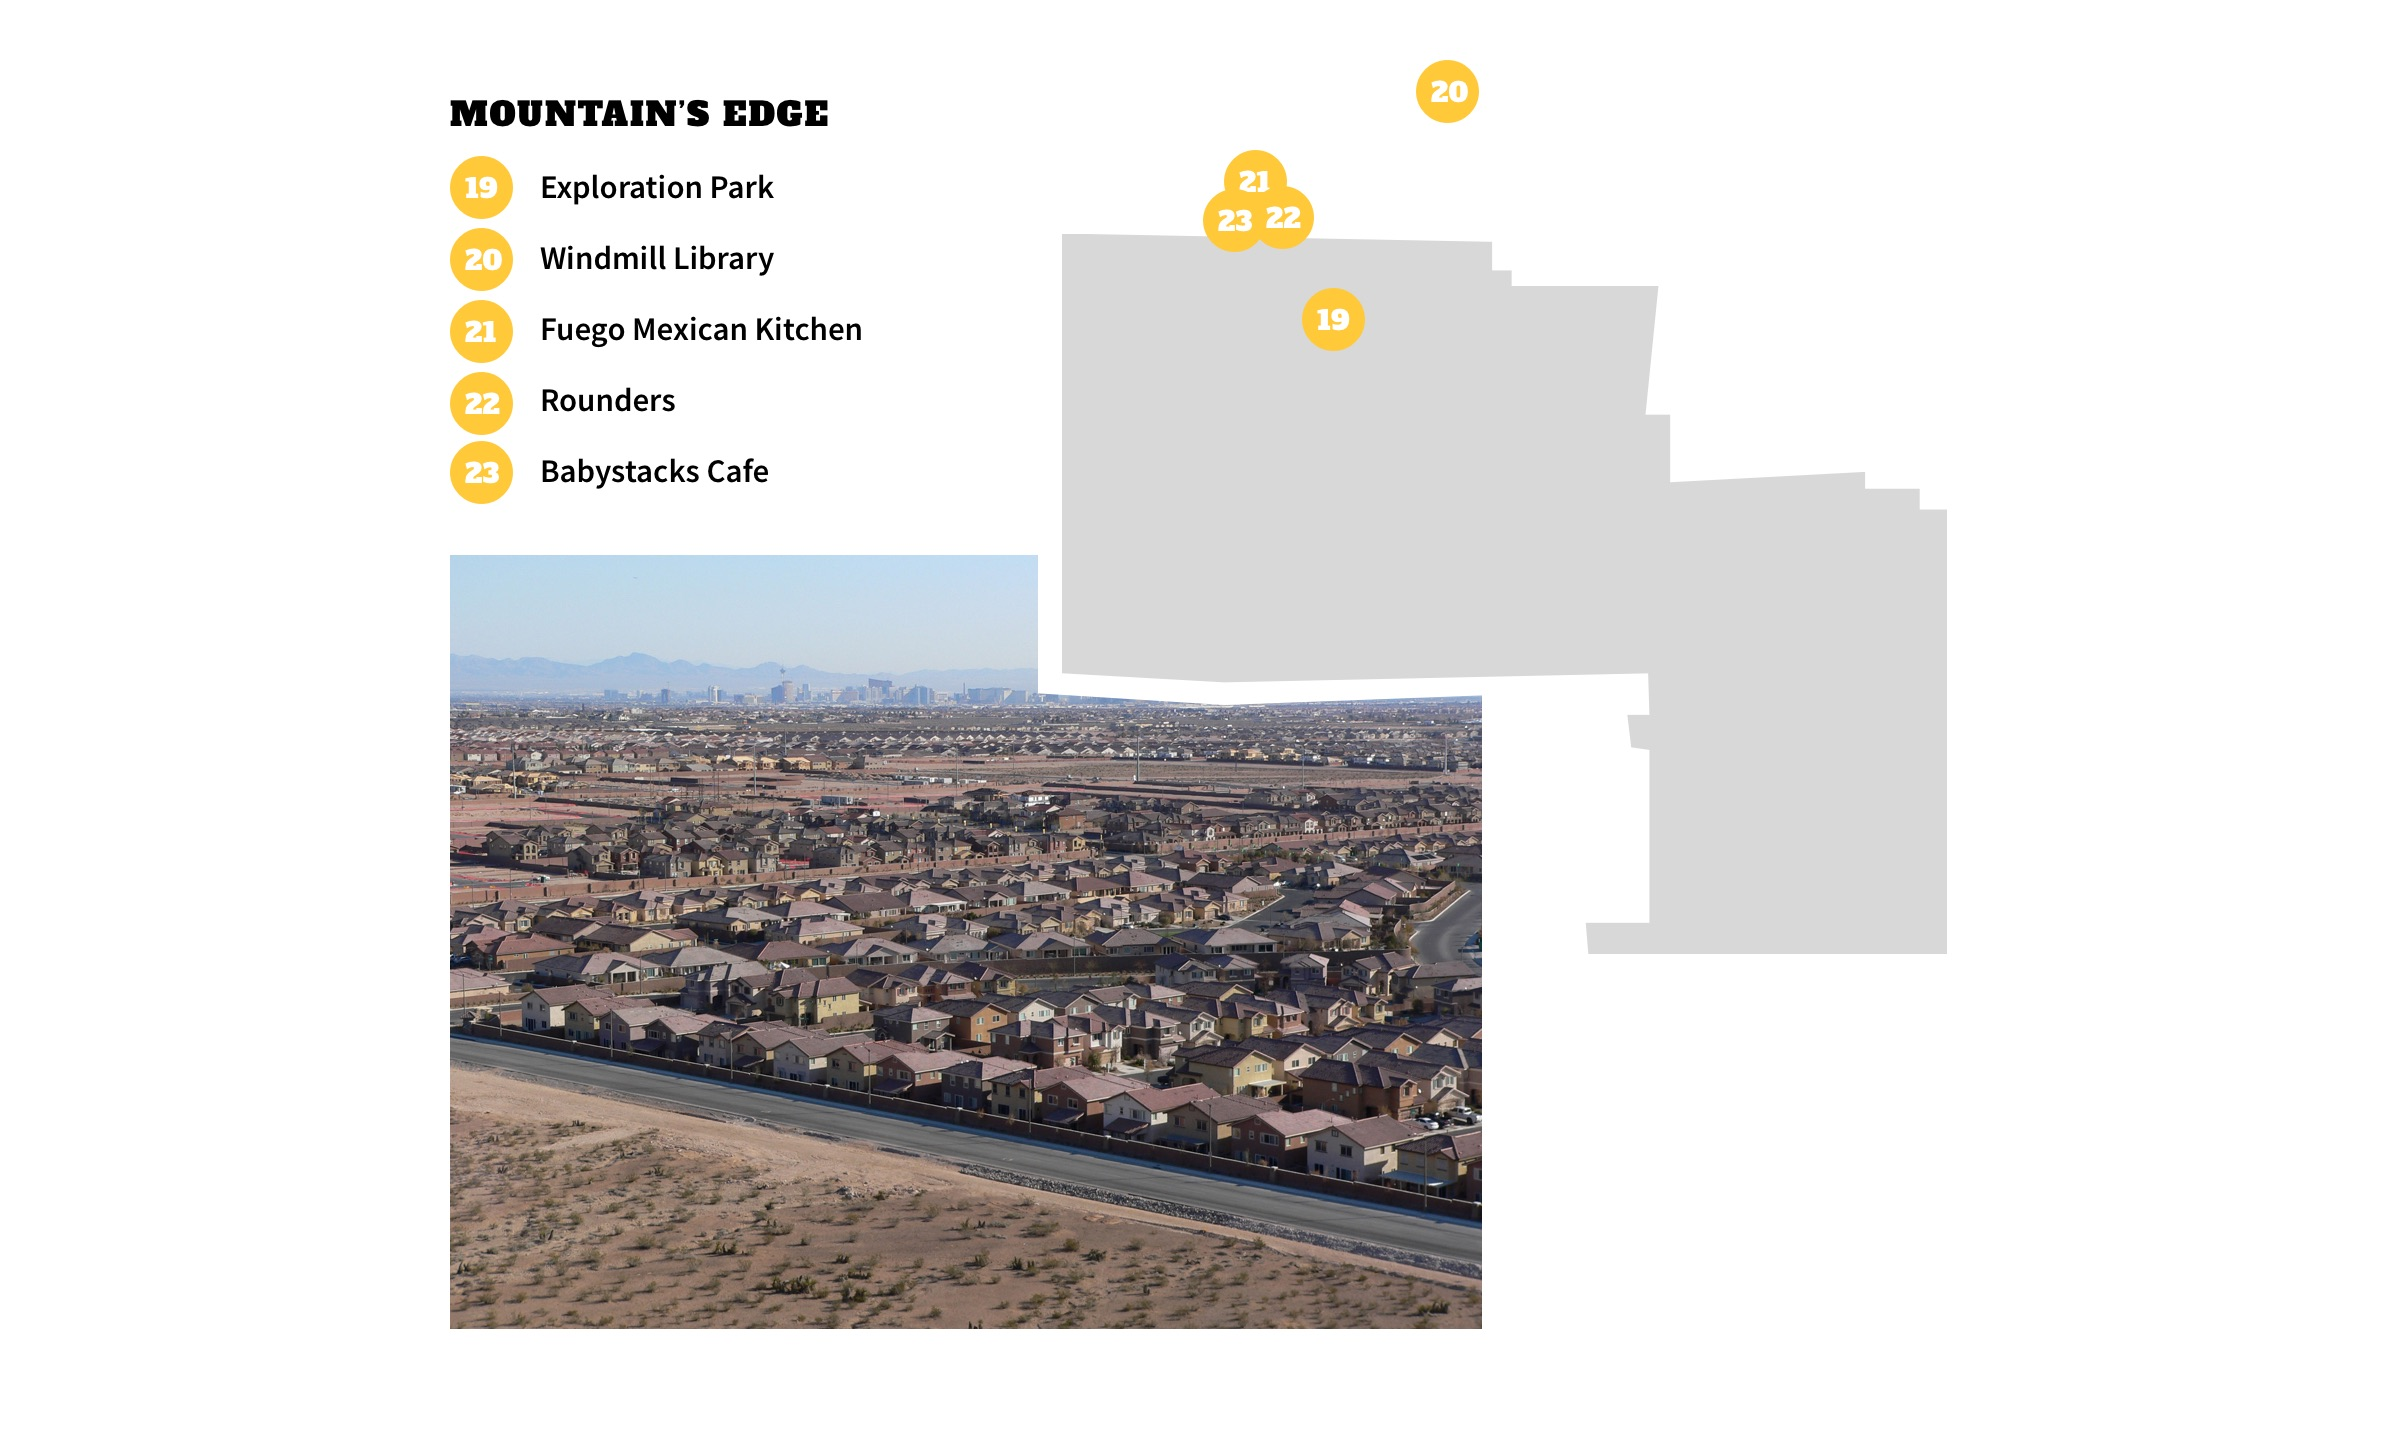 Mountain's Edge Neighborhood Guide - Las Vegas